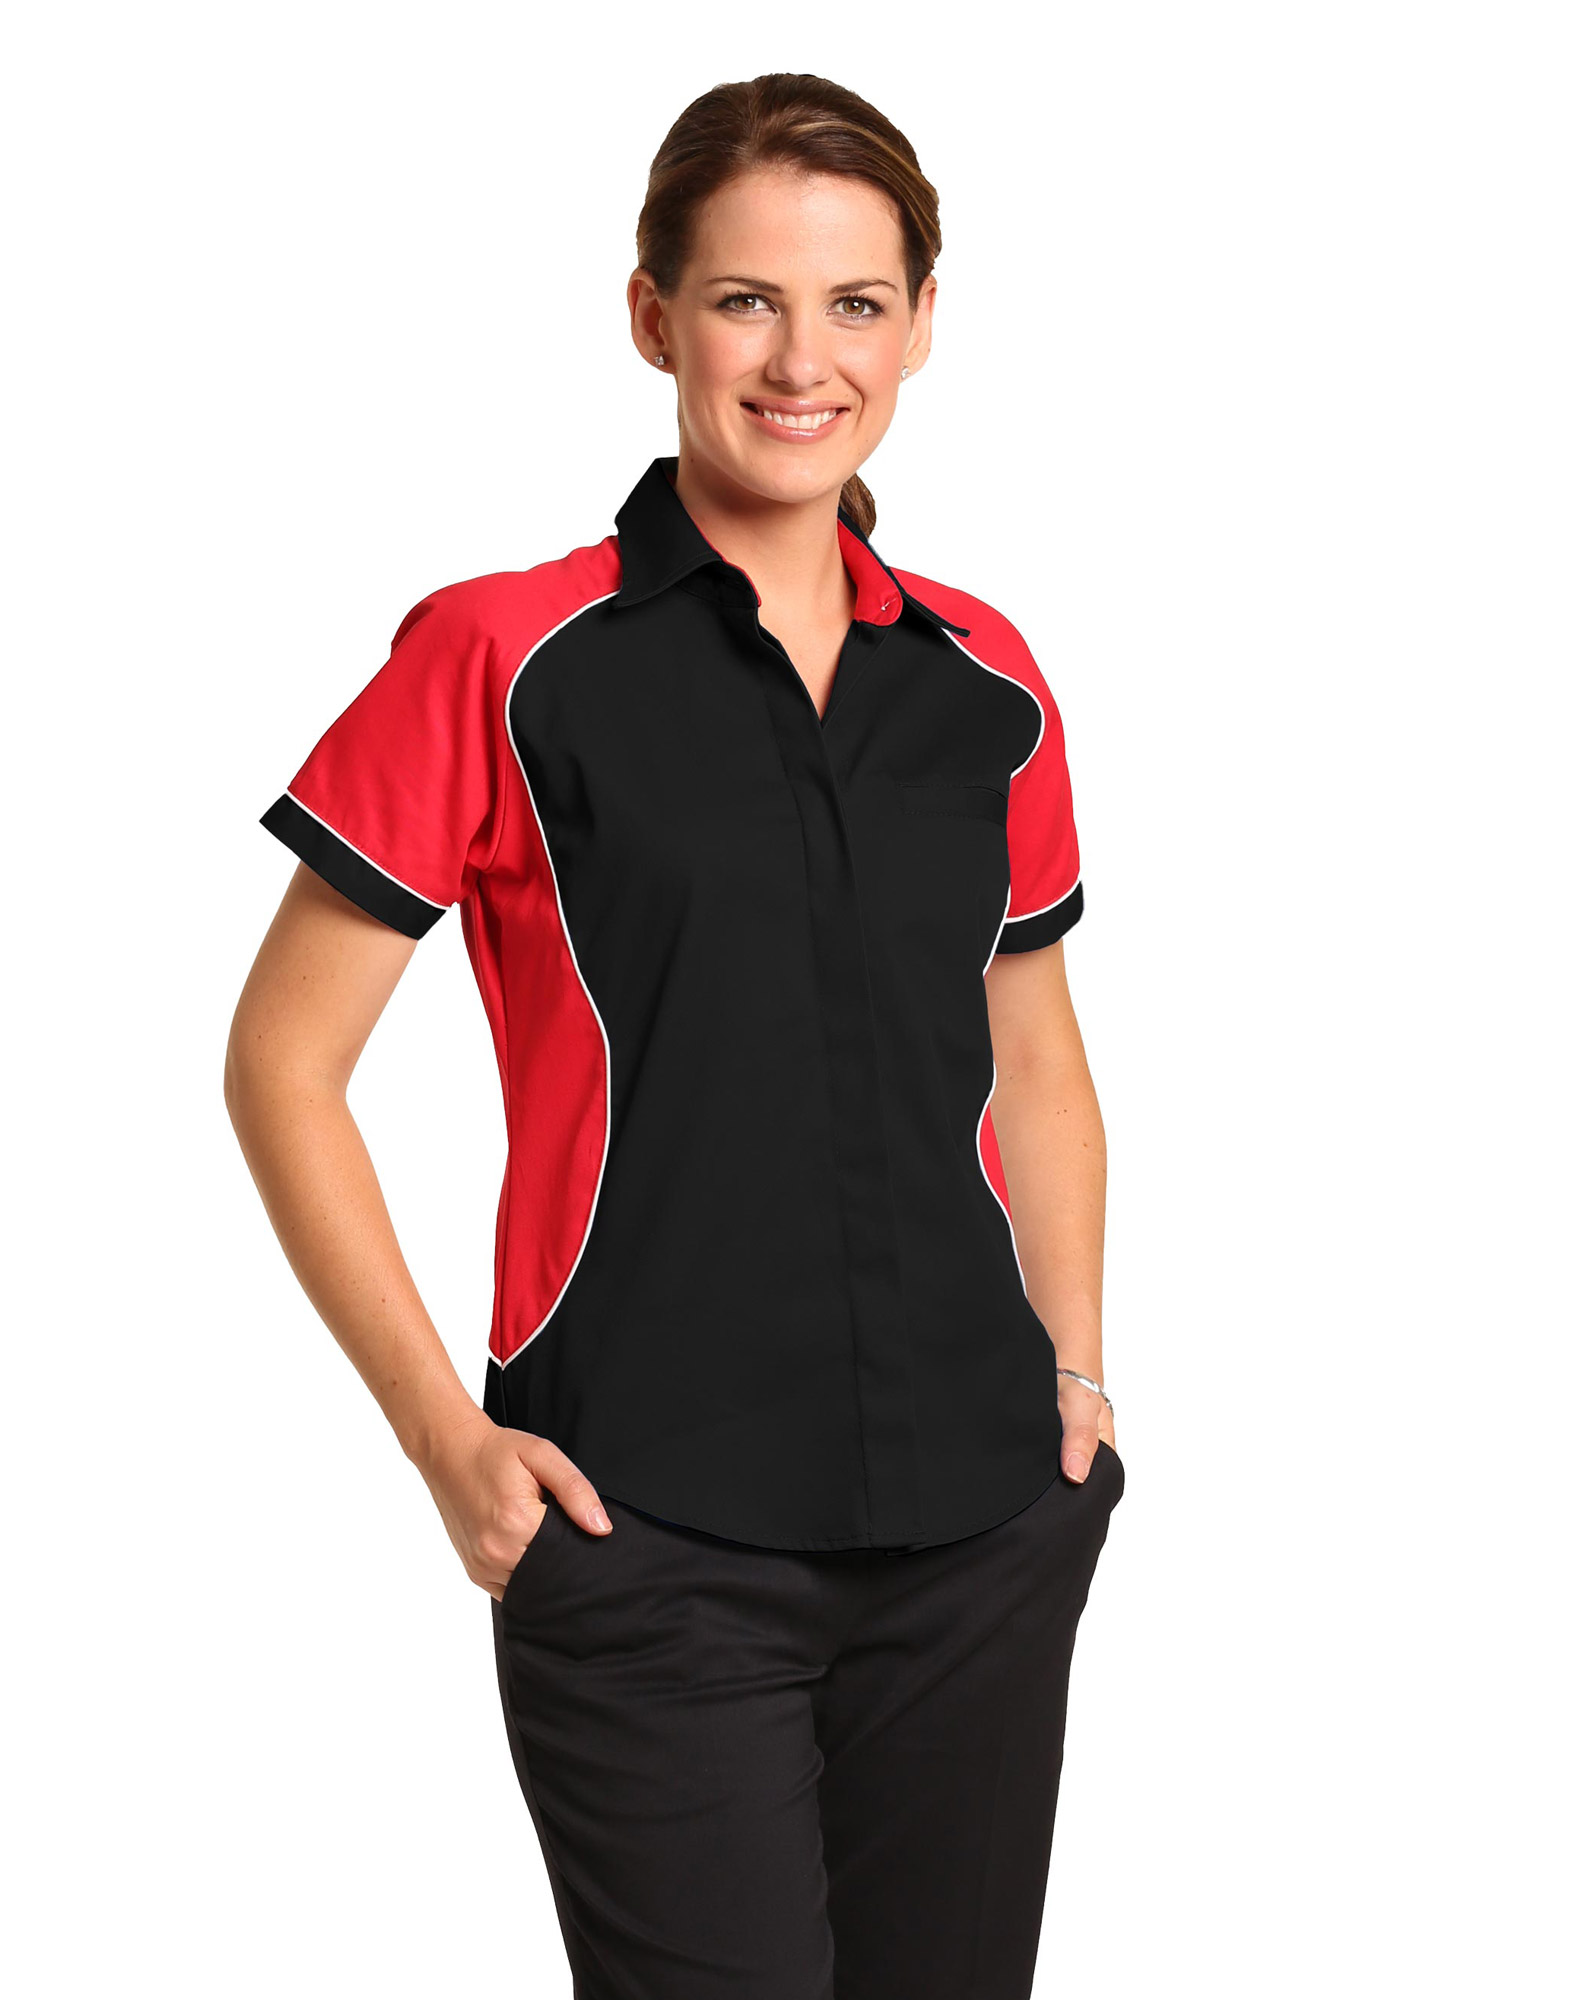 Dri Fit Nike Polo Shirts Wholesale